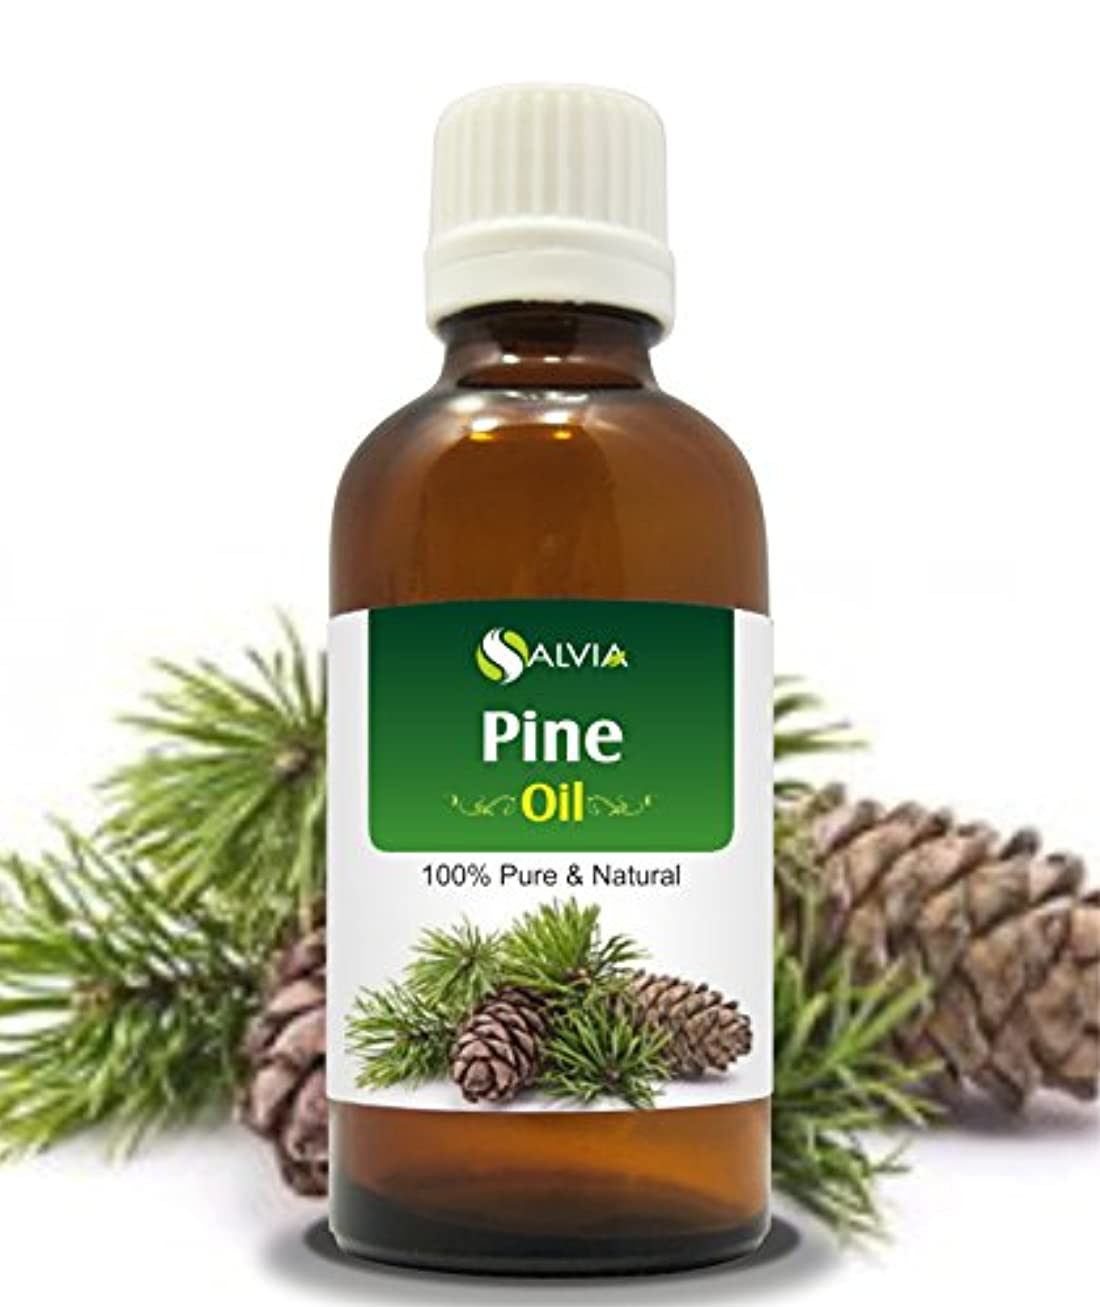 夕暮れ時々時々ラメPINE OIL 100% NATURAL PURE UNDILUTED UNCUT ESSENTIAL OIL 15ML